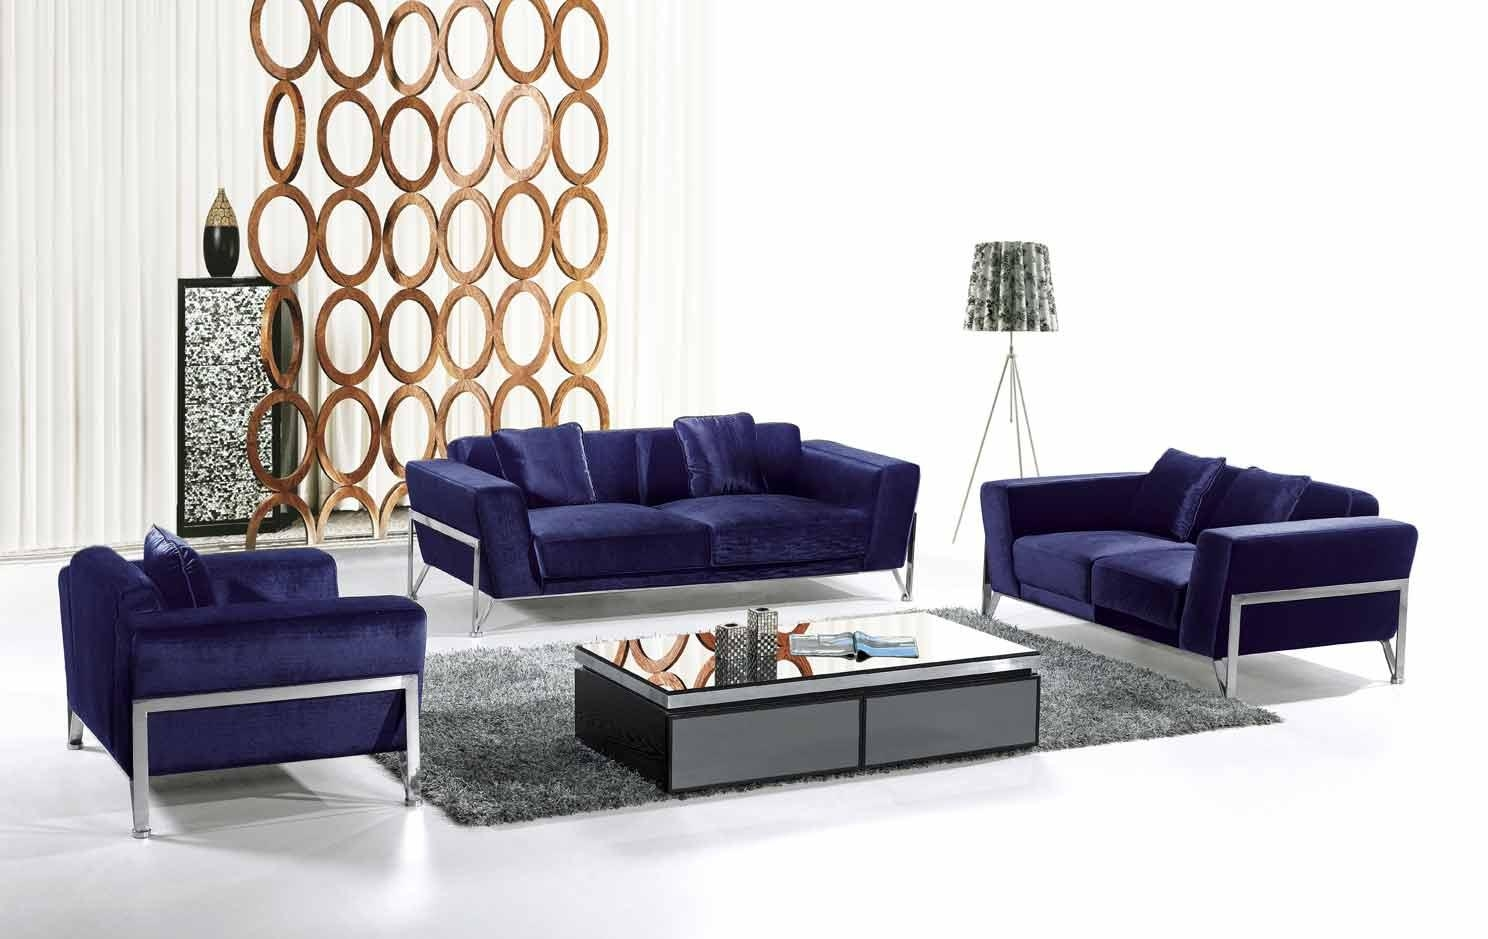 Living Room Couches With Living Room Sofa Chairs (View 4 of 20)